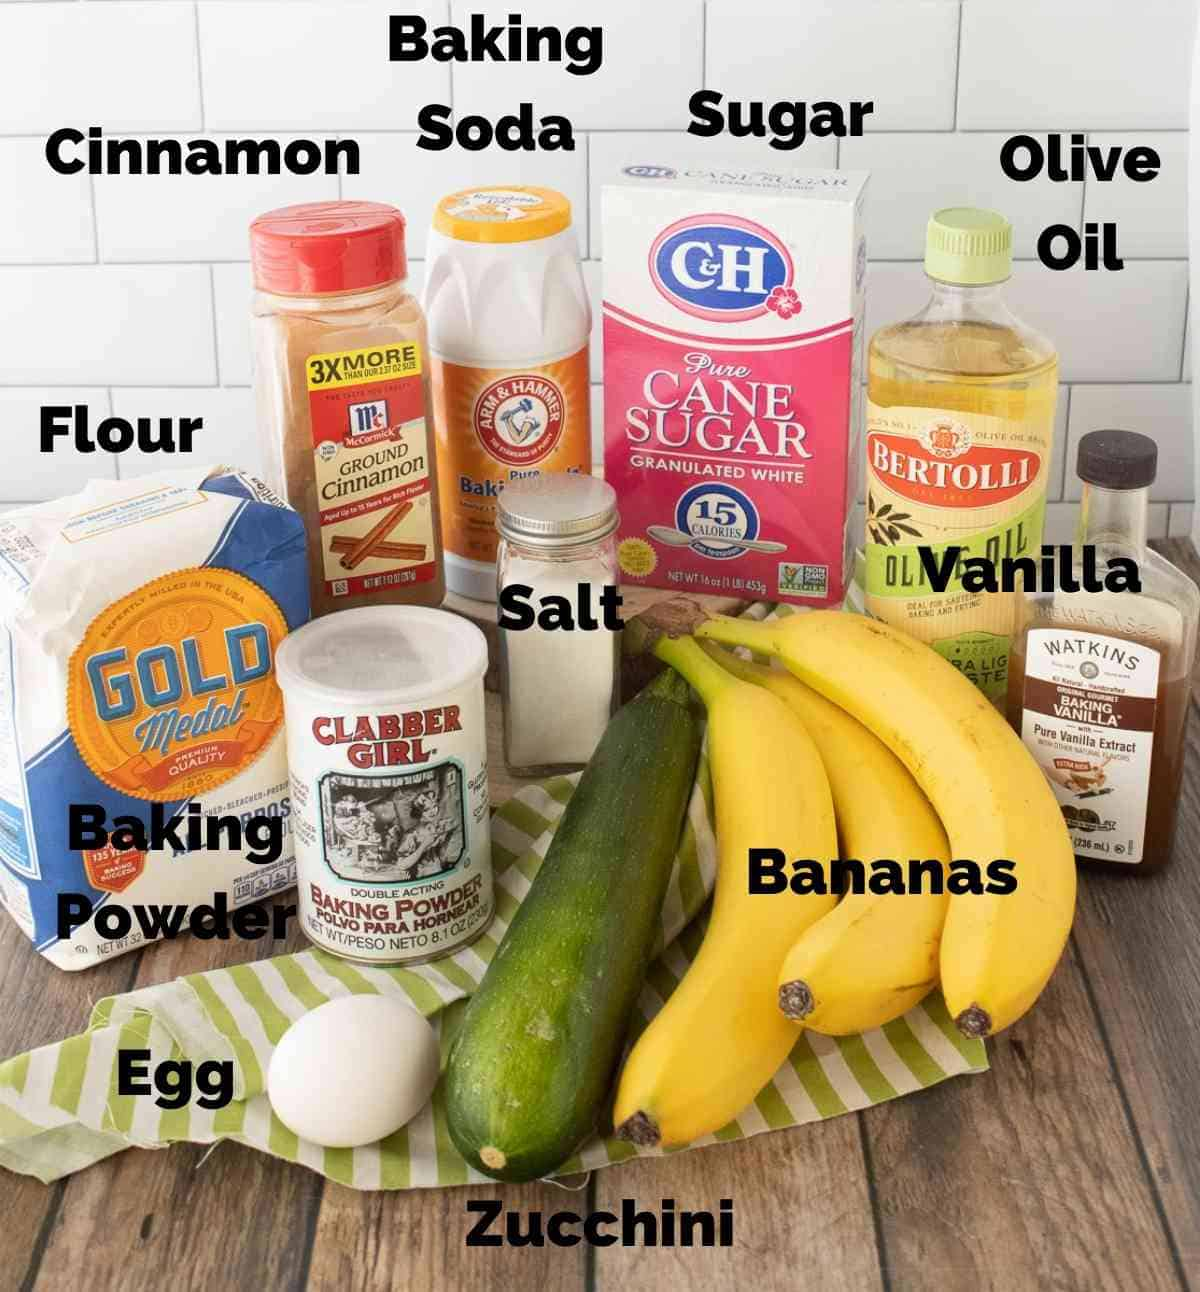 Ingredients needed for this recipe are Flour, Sugar, Cinnamon, Baking Soda, Baking Powder, Olive Oil, Salt, Vanilla, Bananas, Zucchini, and an Egg.